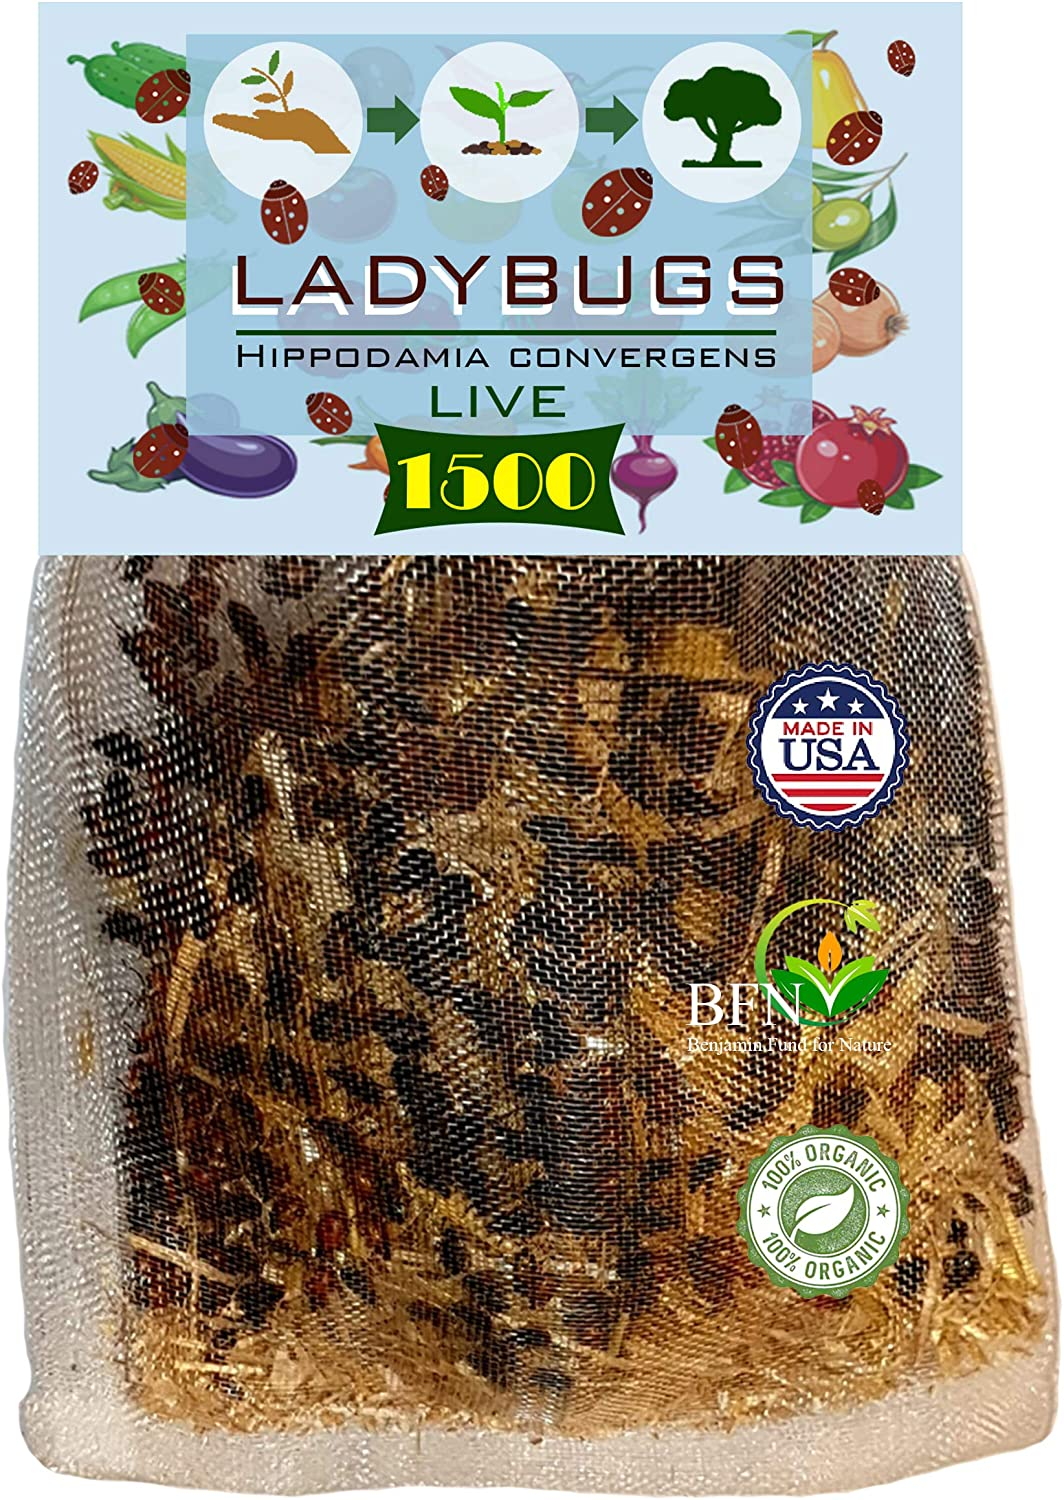 Clark&Co Organic 1500 Live Ladybugs - Good Bugs for Garden - Hippodamia Convergens Beetles - Guaranteed Live Delivery!